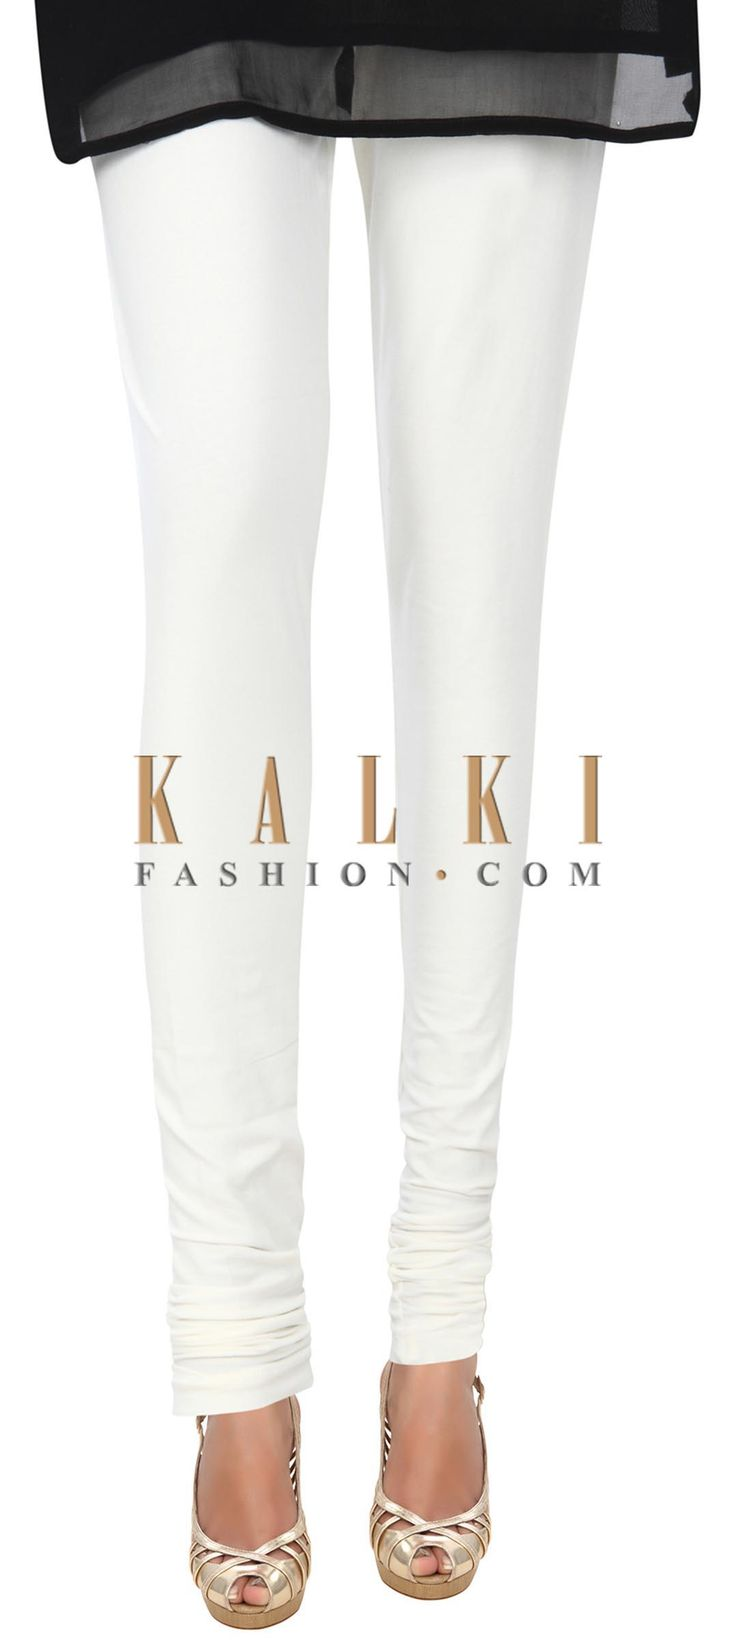 Buy Online from the link below. We ship worldwide (Free Shipping over US$100) Price- $9 Click Anywhere to Tag http://www.kalkifashion.com/white-cotton-hosiery-legging-only-on-kalki-21464.html